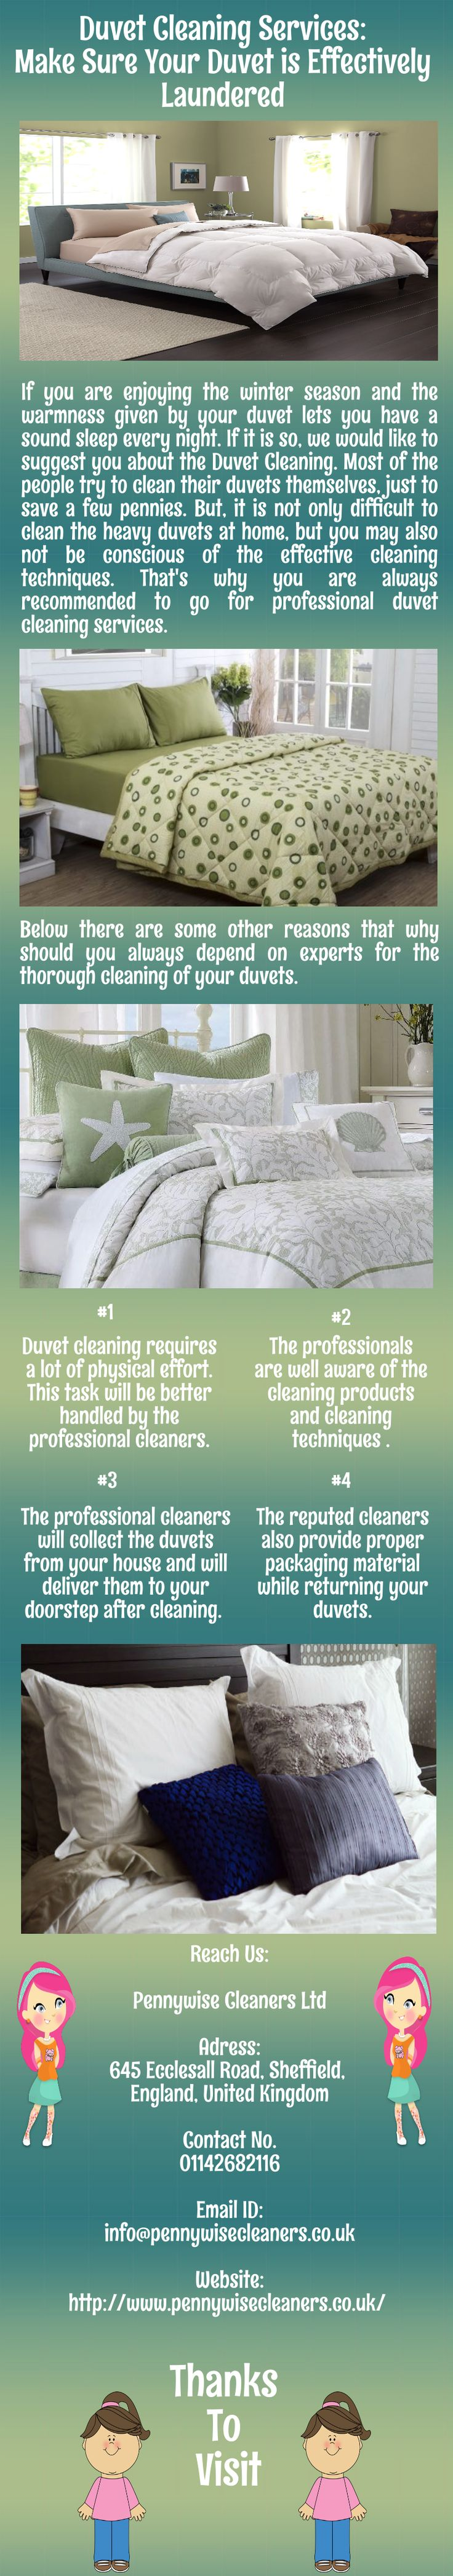 Duvet Cleaning Dry Cost